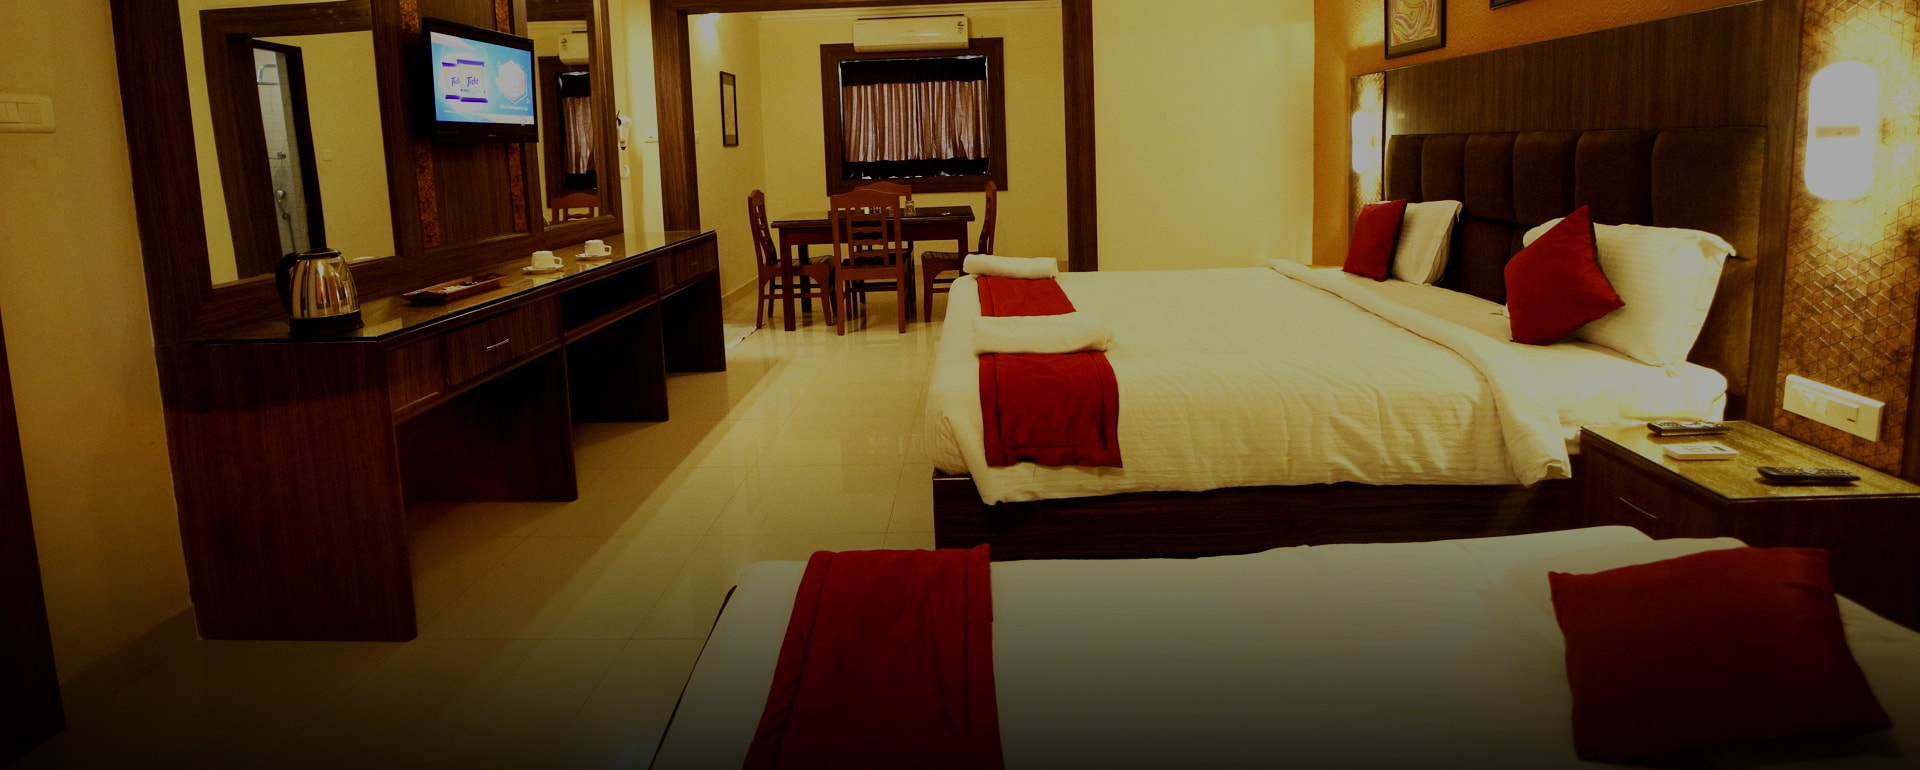 Deluxe Rooms - Celebrity Resort